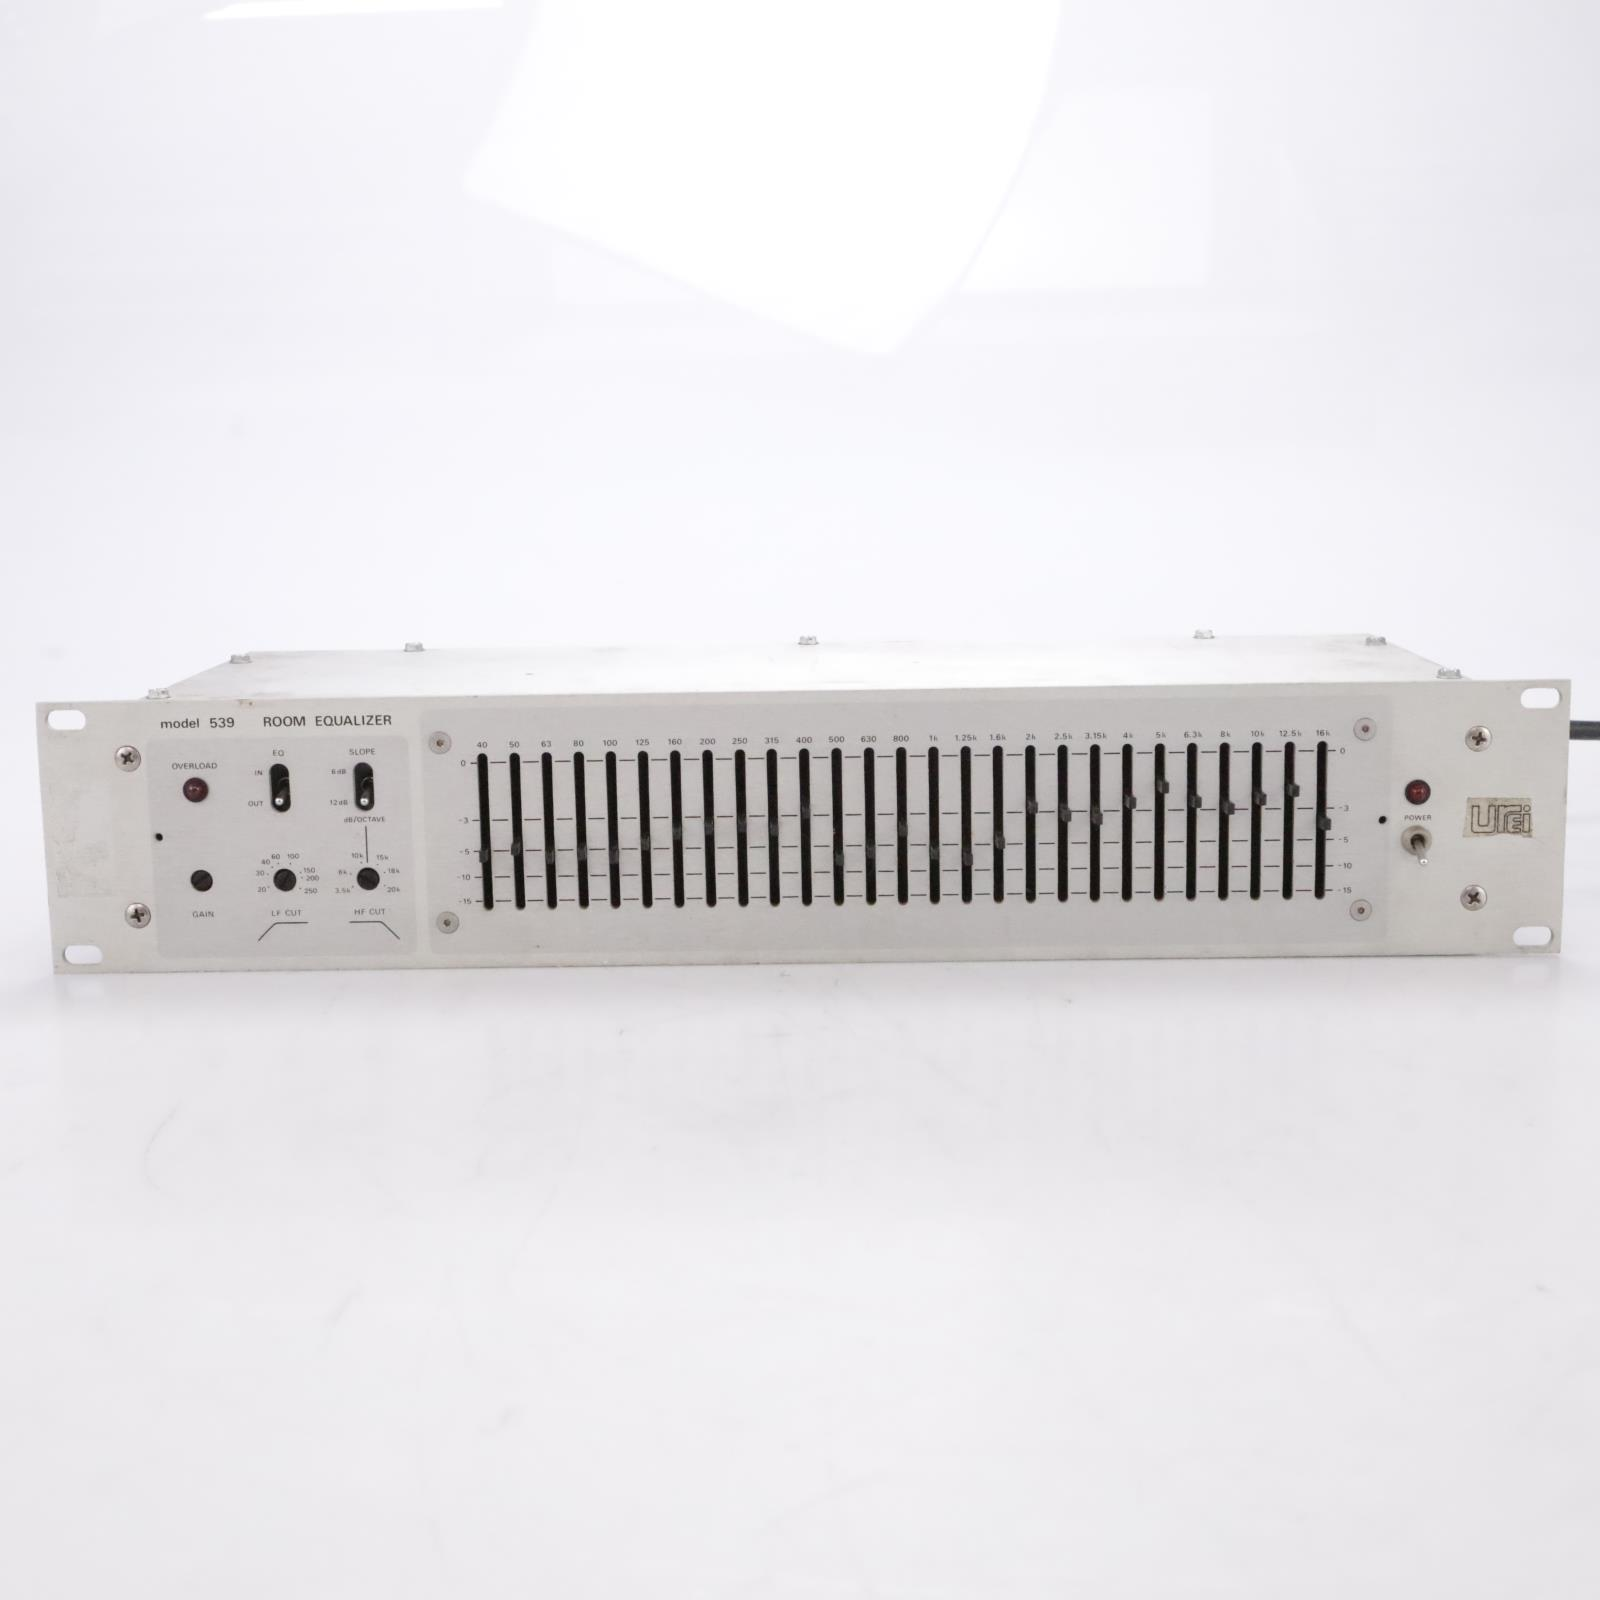 UREI 539 27-Band One-Third Octave Room Graphic Equalizer EQ Rack #44047